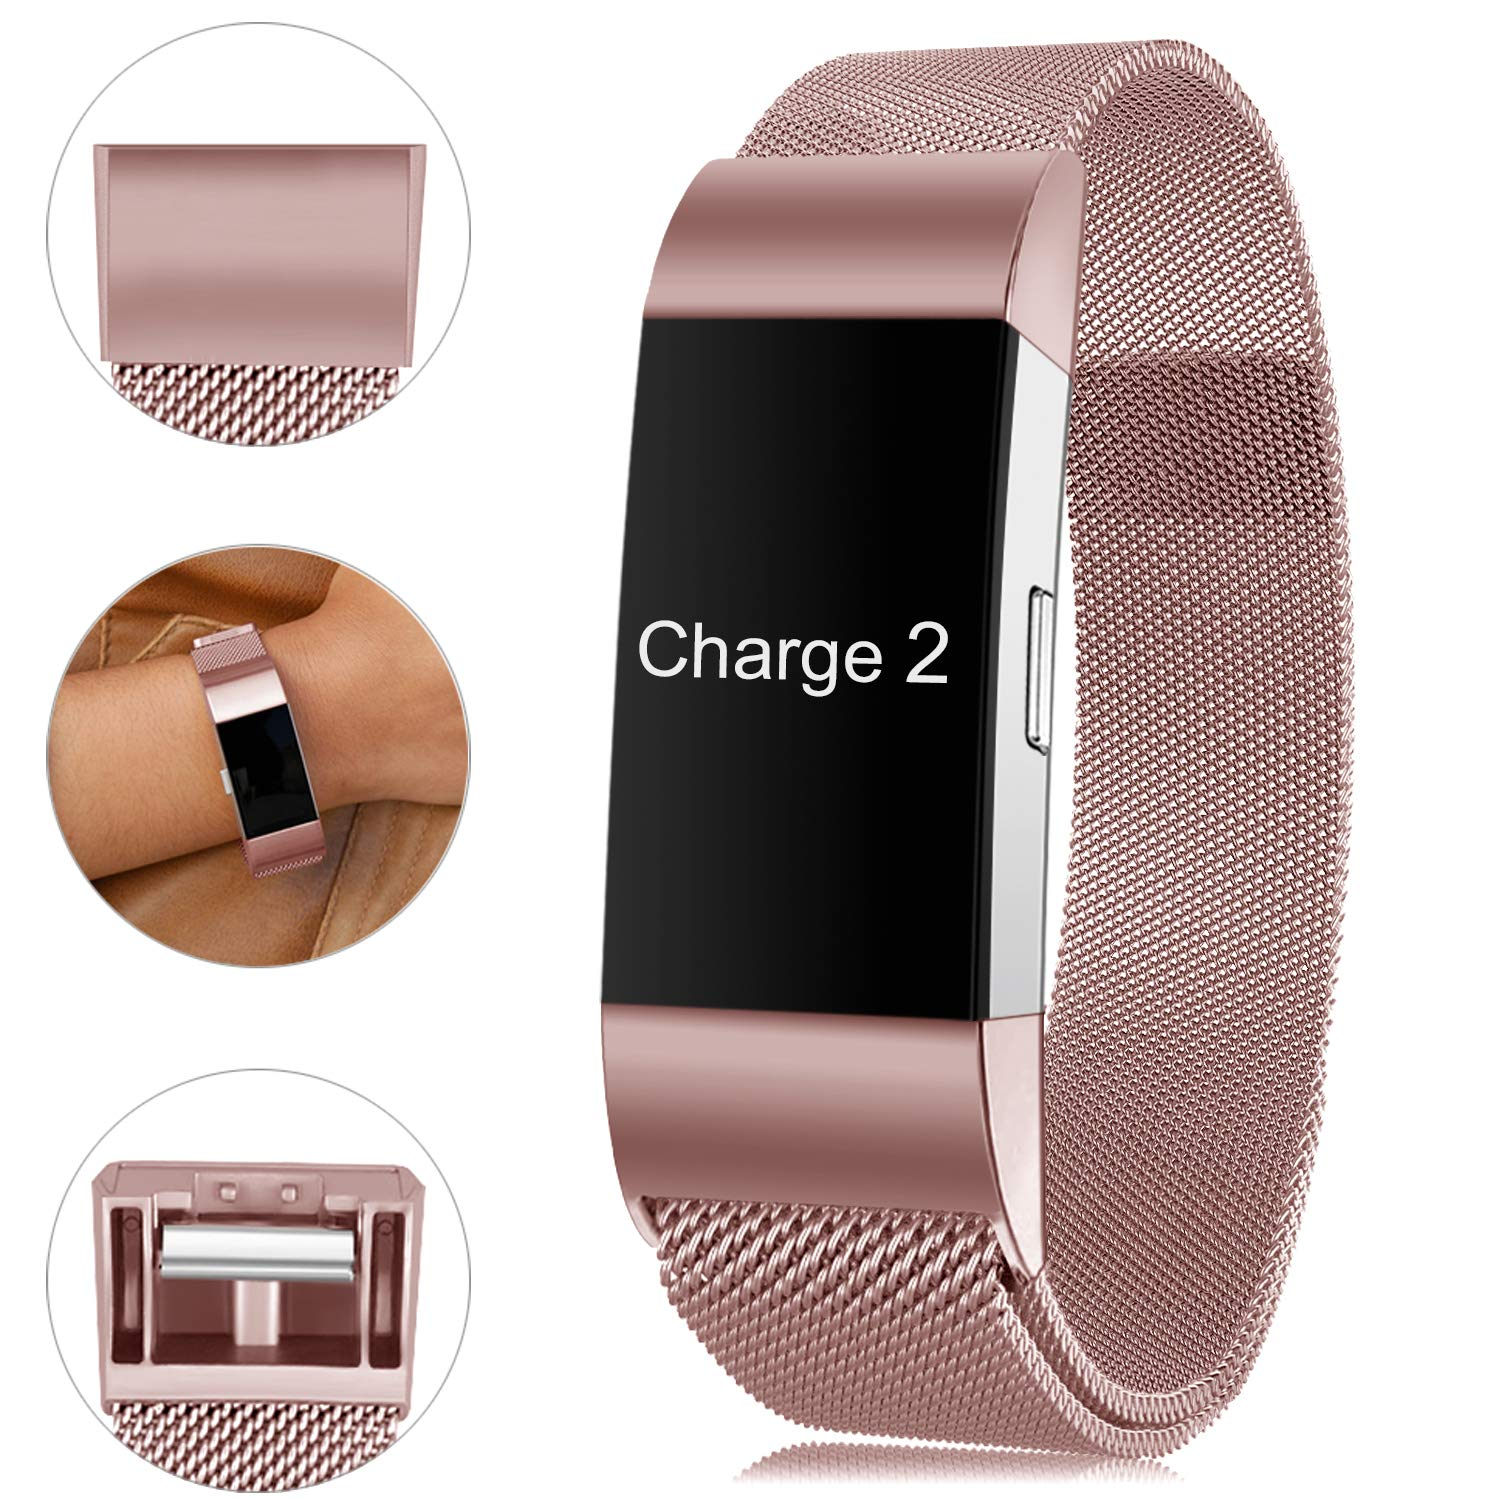 Find-MyWay Compatible with Fitbit Charge 2 Band,Charge 2 Accessories Stainless Steel Bracelet Women Men Wristbands Strap Rose Gold Silver Compatible for Charge 2 Fitness Tracker by Find-MyWay